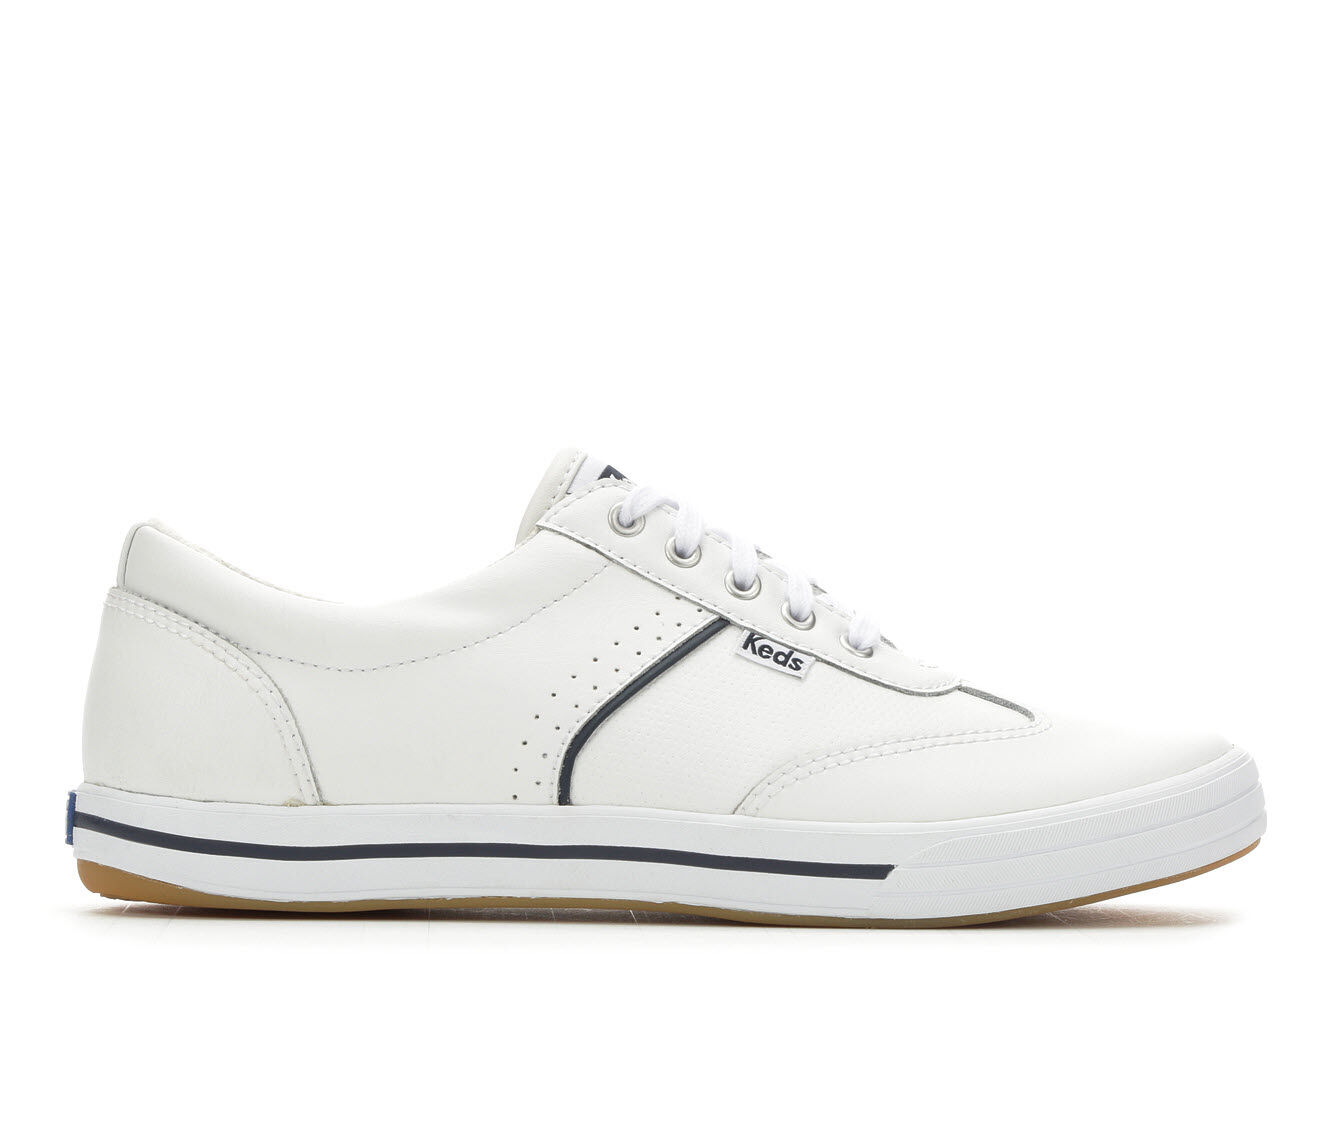 Women's Keds Courty Leather Sneakers White